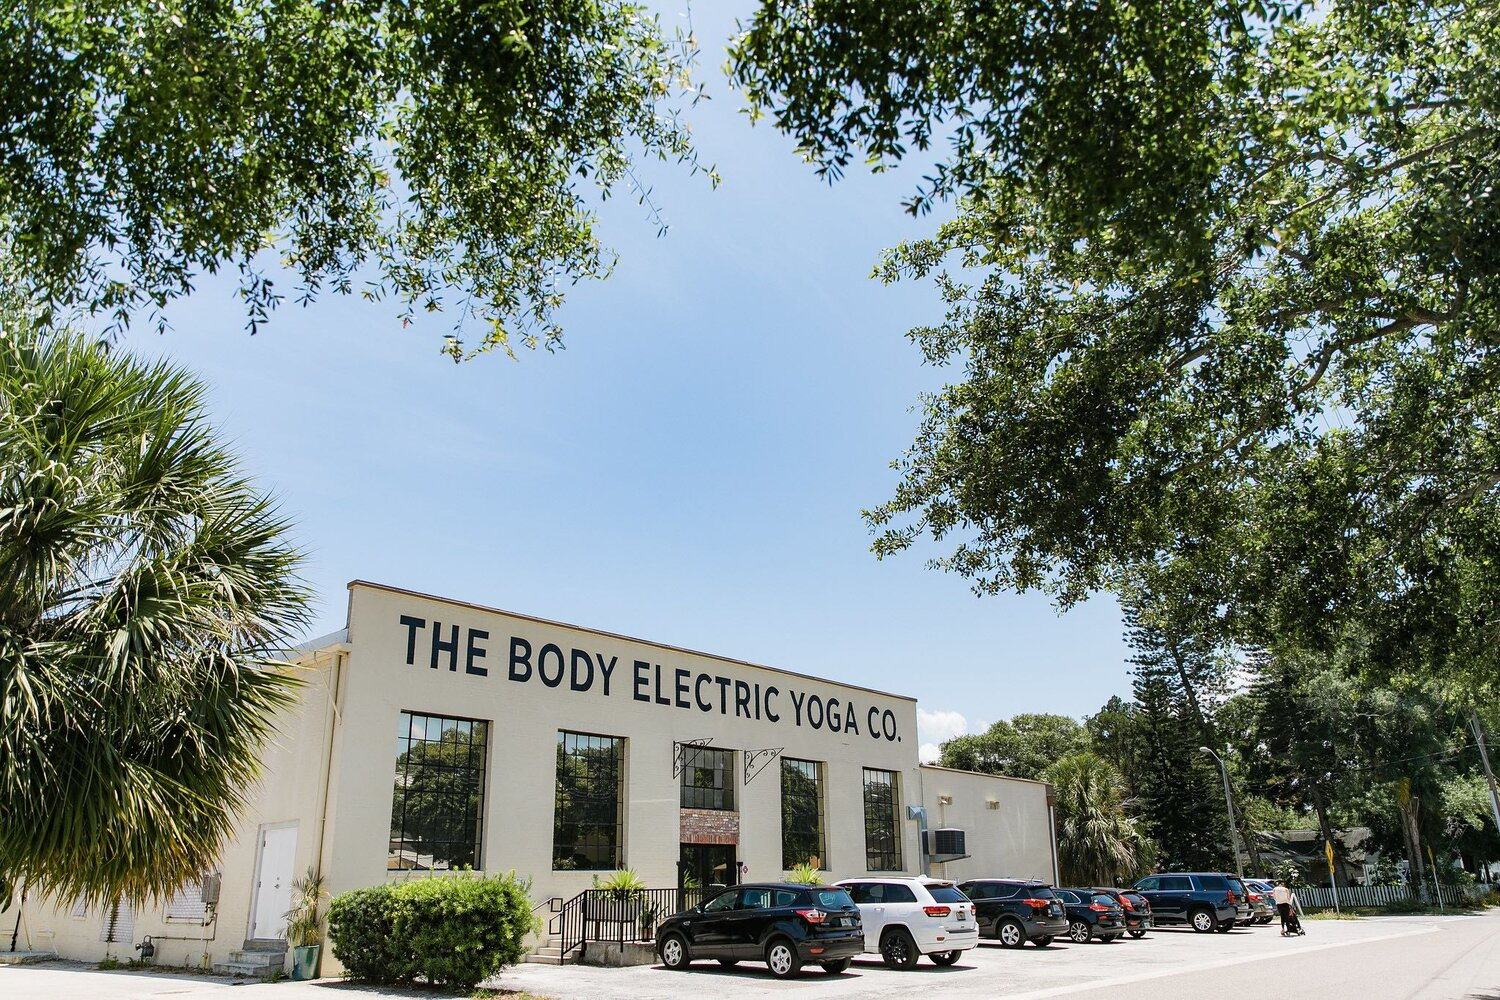 The Body electric Yoga Company located at 3015 7th Street North in St Petersburg, FL. Photo Credit City of St Petersburg